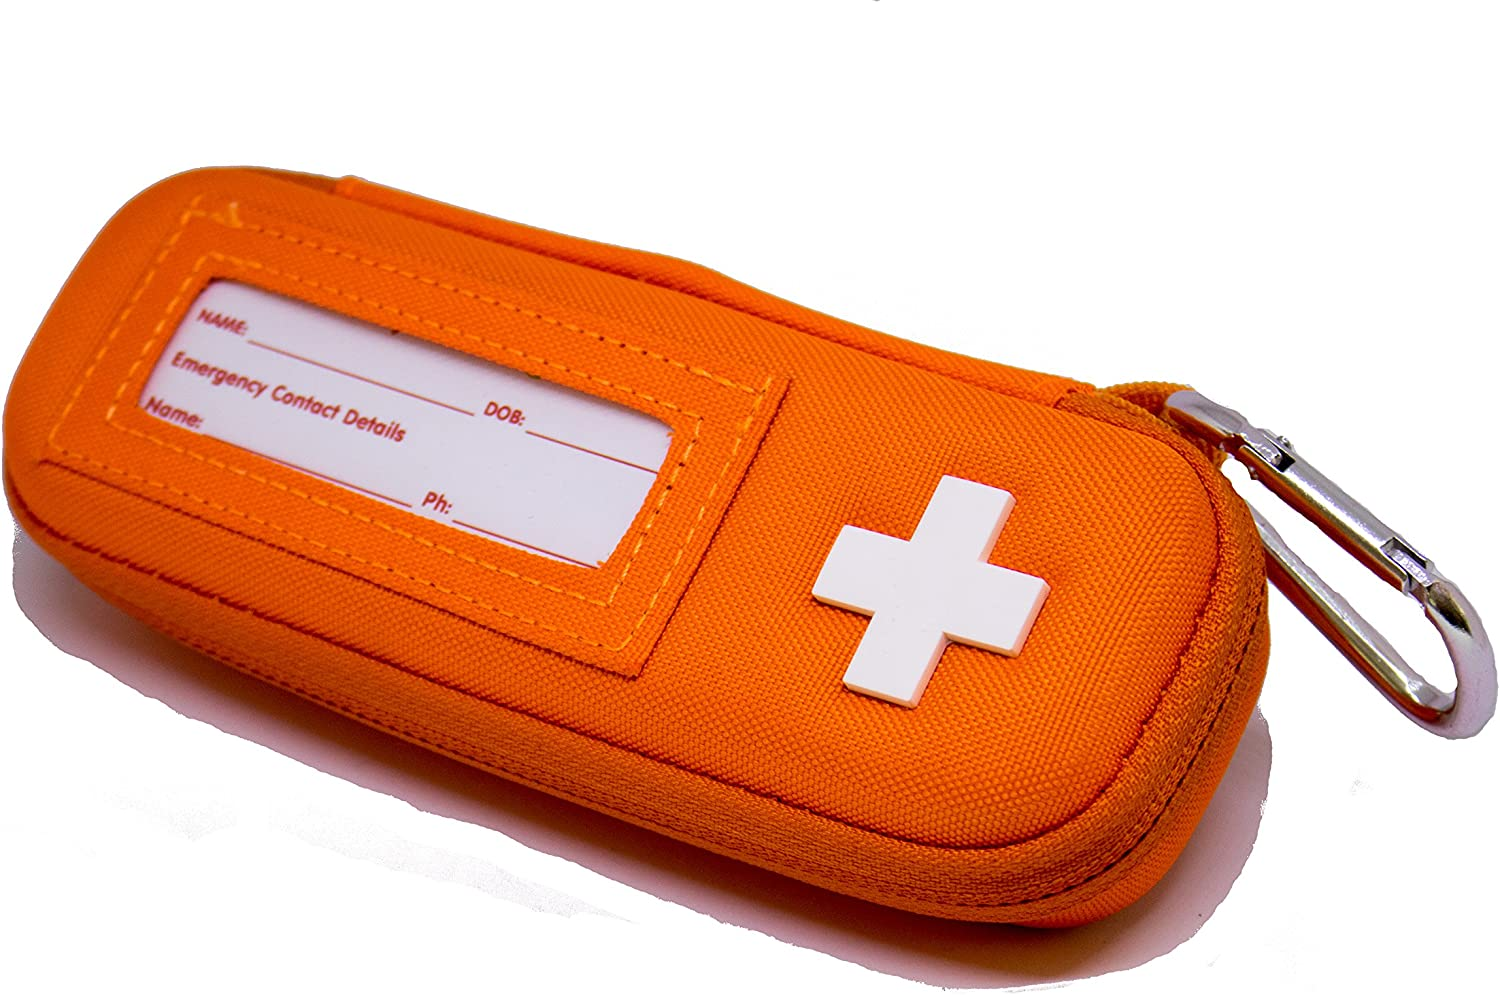 MyMediBag Hardcase Insulated - Single EPIPEN - Medication Bag for Allergy and Asthma - Highly Visible and Noticeable in The case of an Emergency